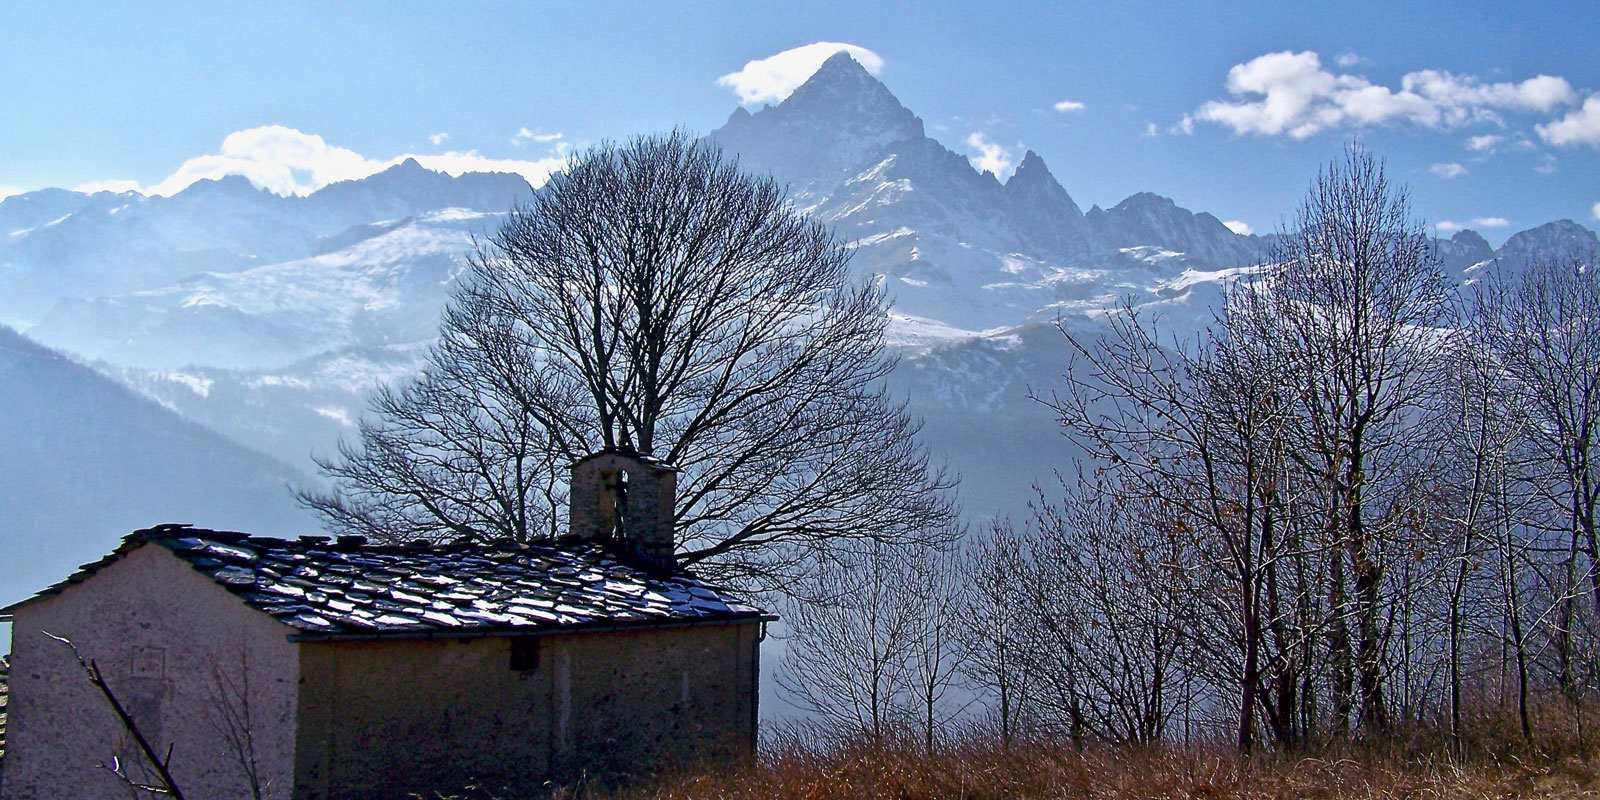 Ostana and the Monviso mountain